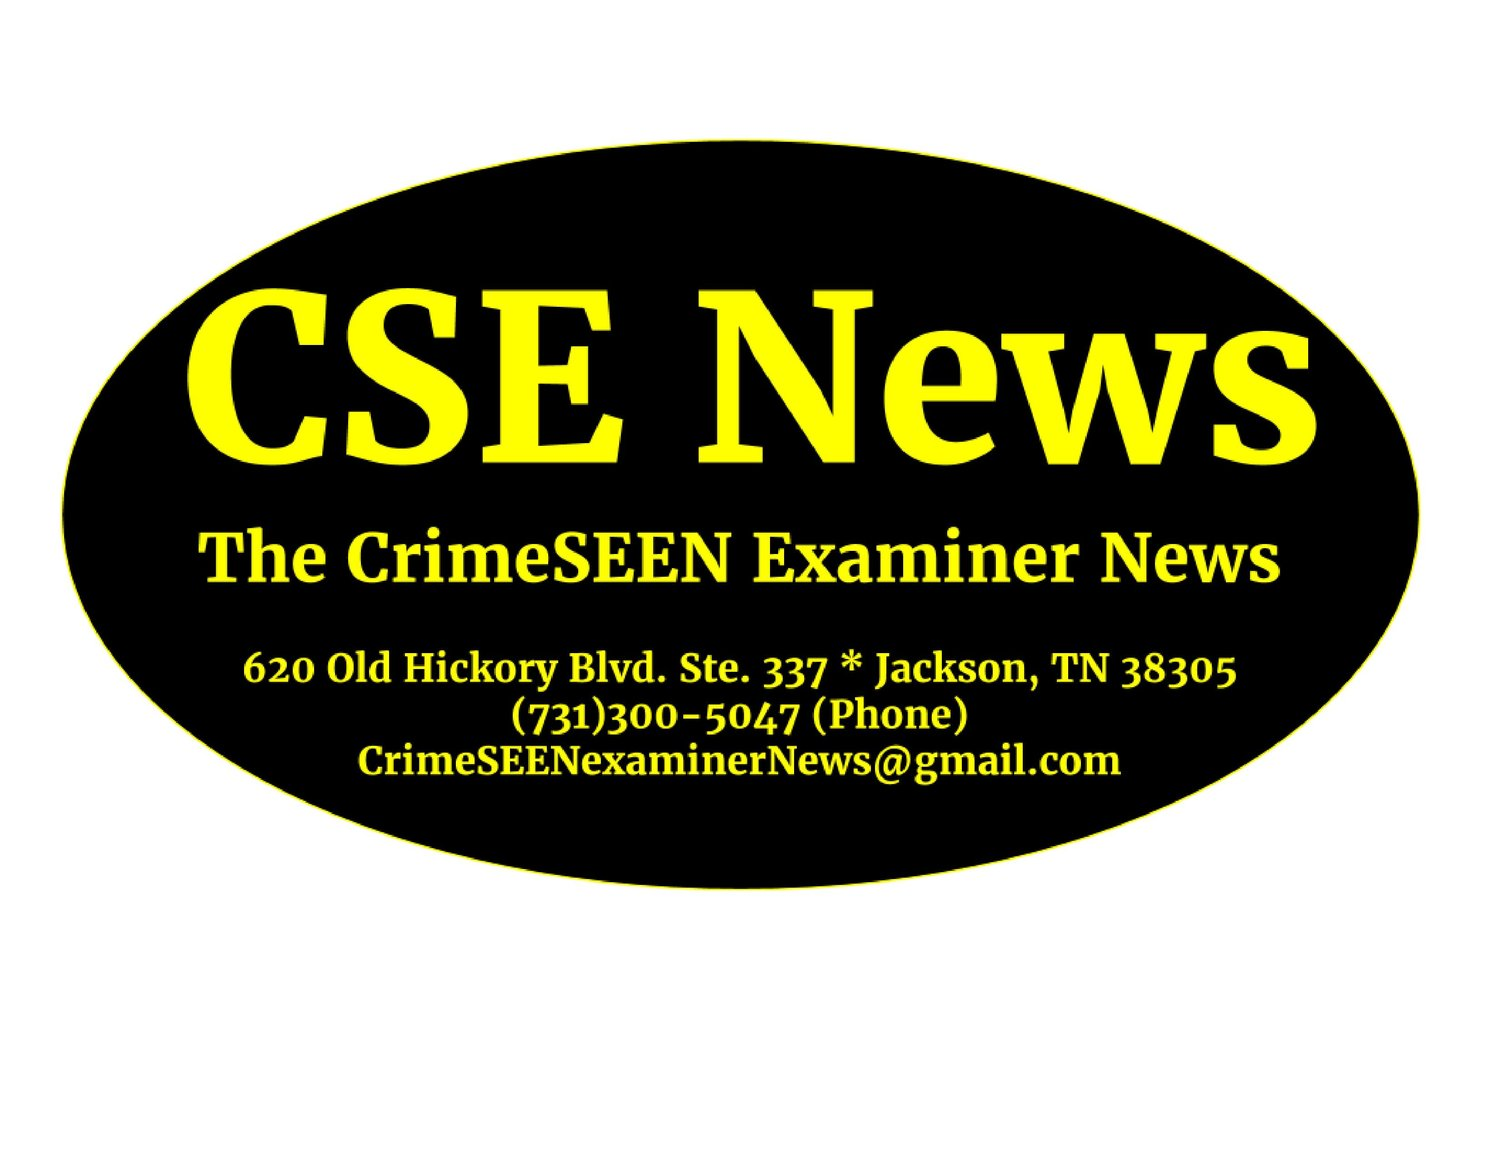 The CrimeSEEN Examiner News